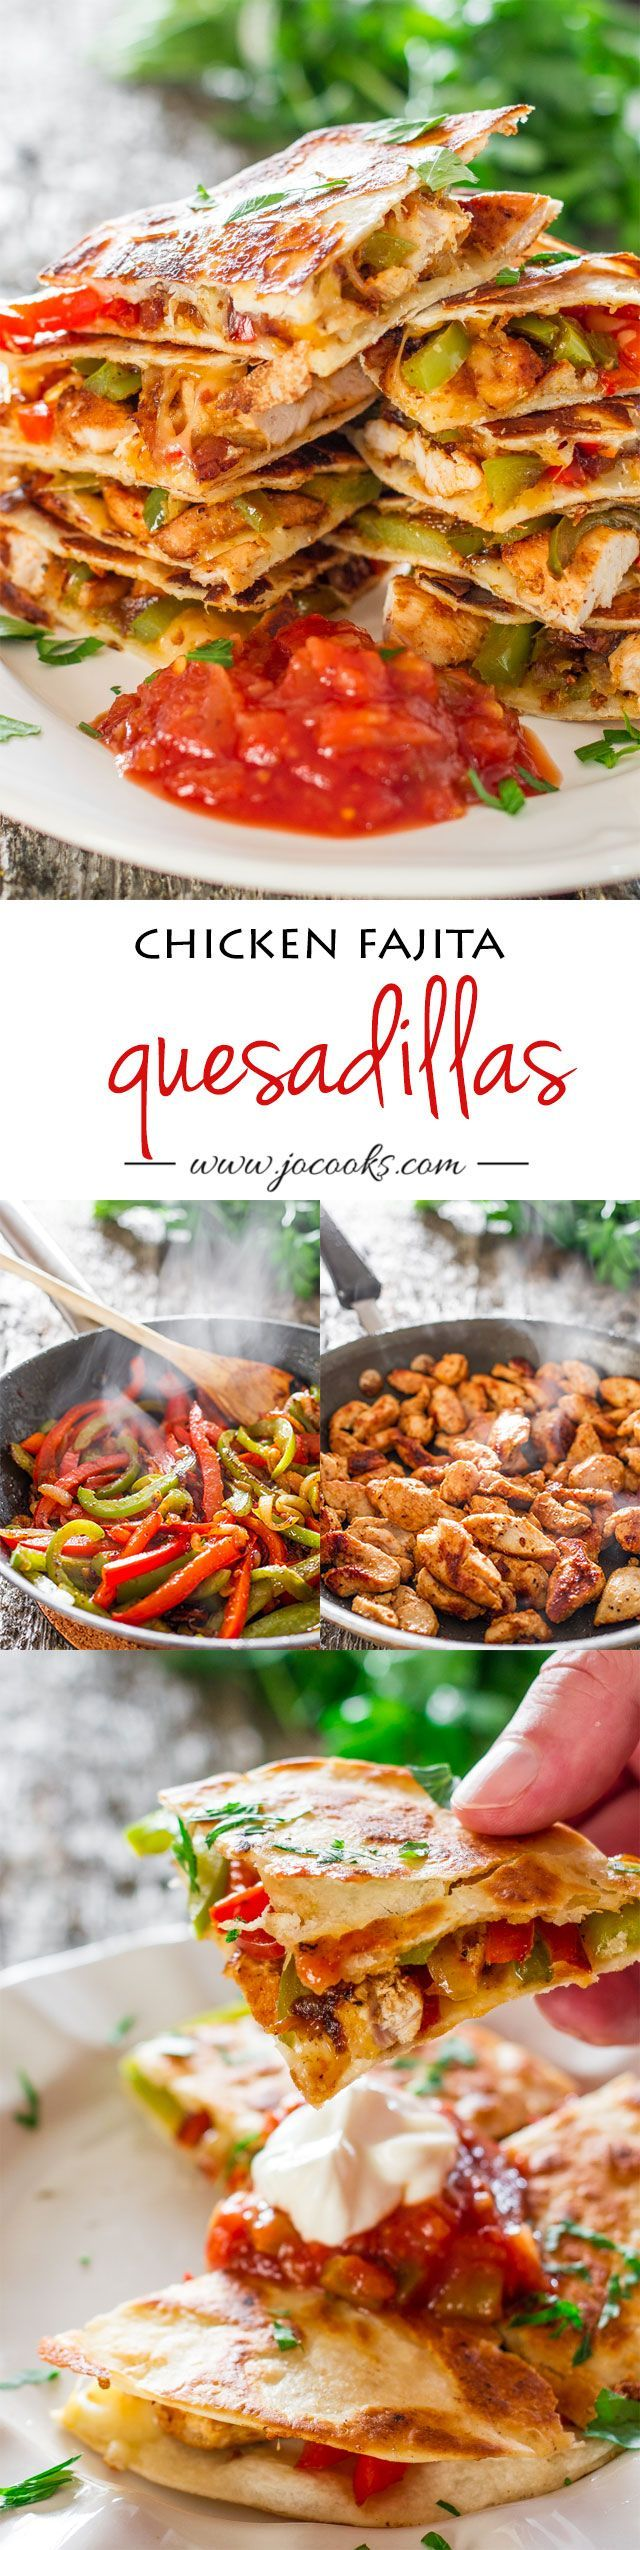 Chicken Fajita Quesadillas!  Well these look just scrumptious! #texmex #quesadillas #dan330 livedan330.com/...